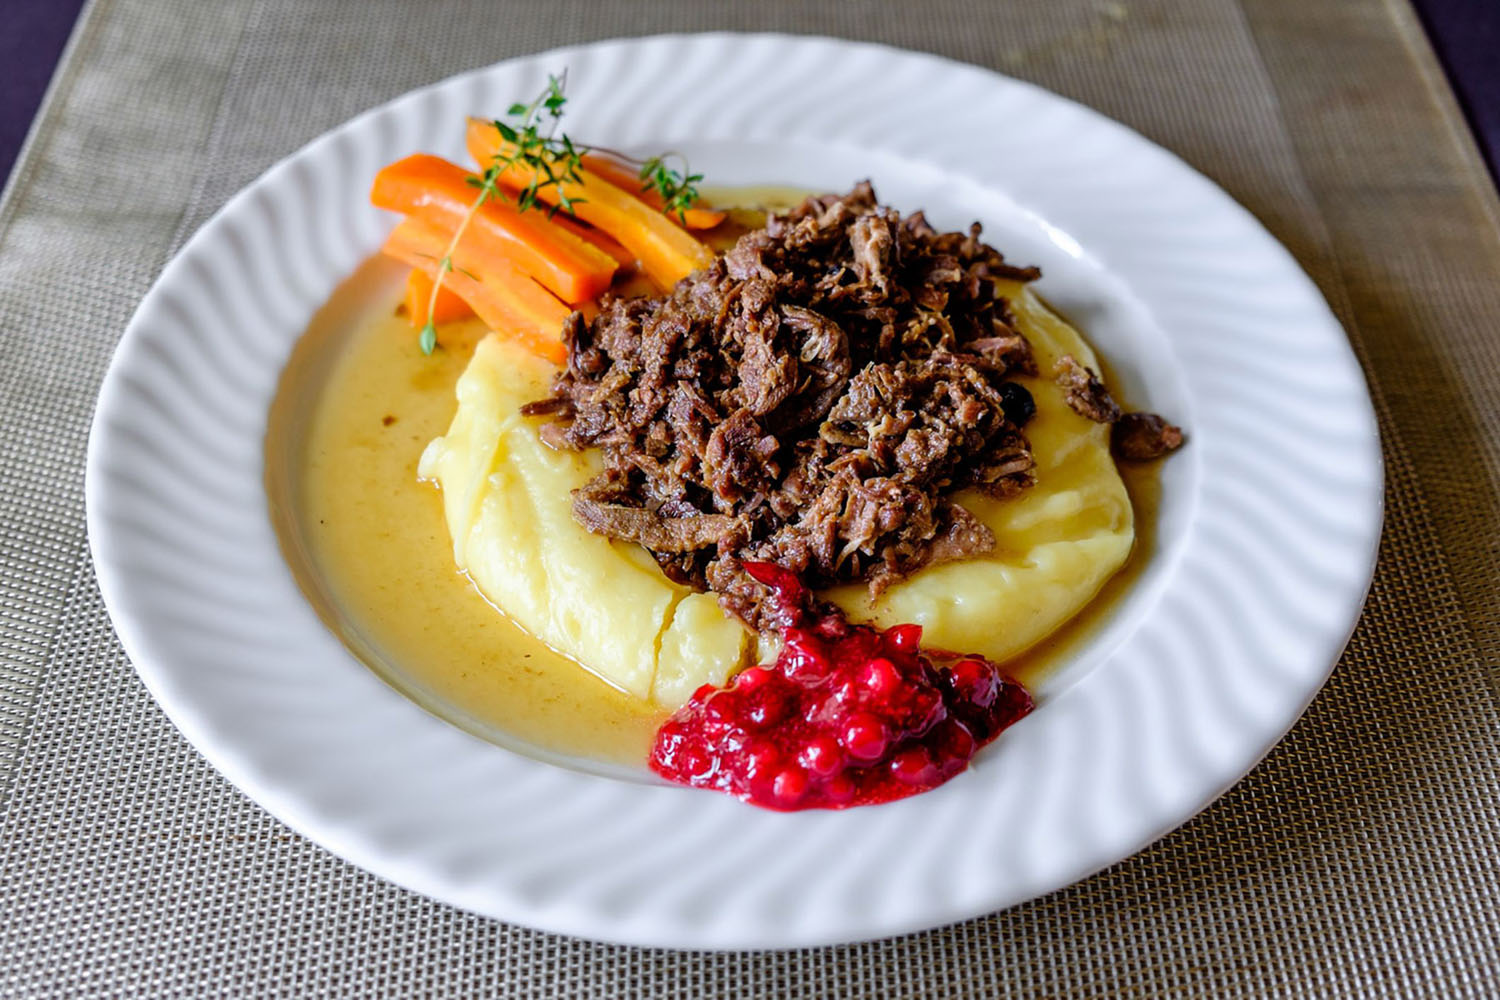 Reindeer meat with mashed potatoes, black pepper and wild berries